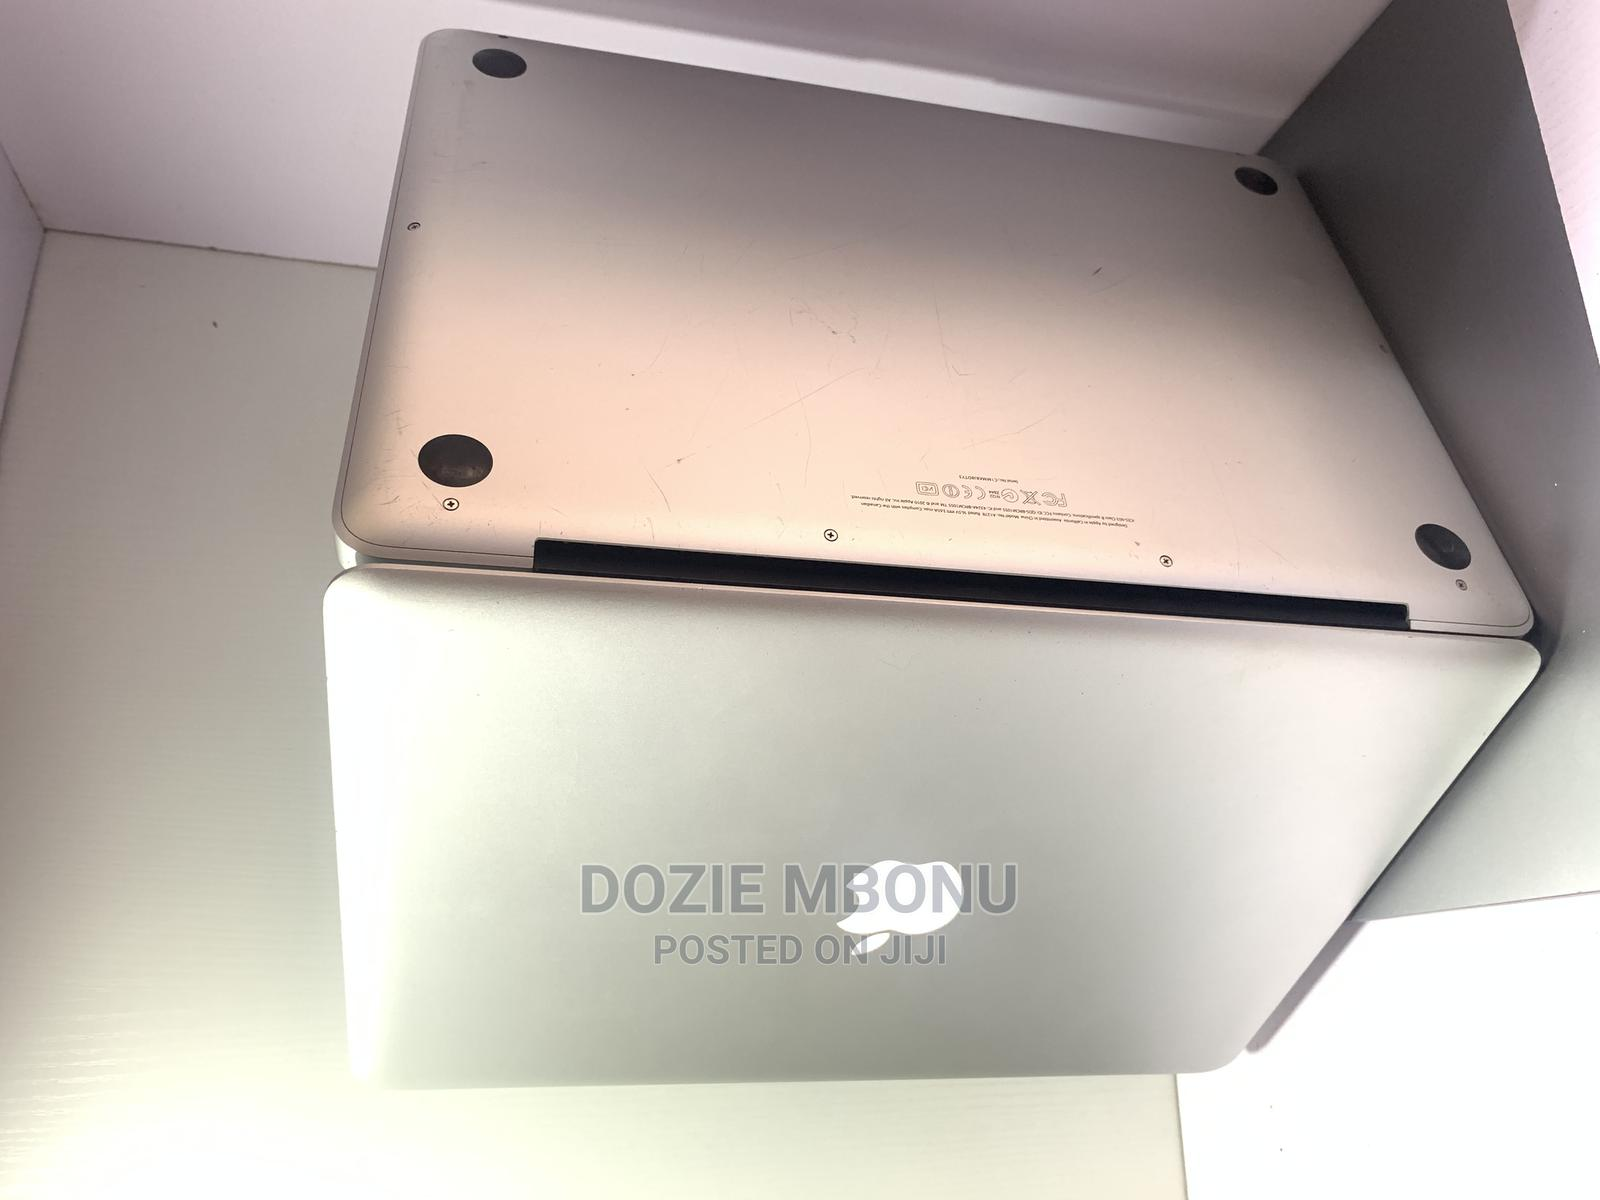 Laptop Apple MacBook Pro 2012 4GB Intel Core I5 HDD 500GB | Laptops & Computers for sale in Wuse 2, Abuja (FCT) State, Nigeria